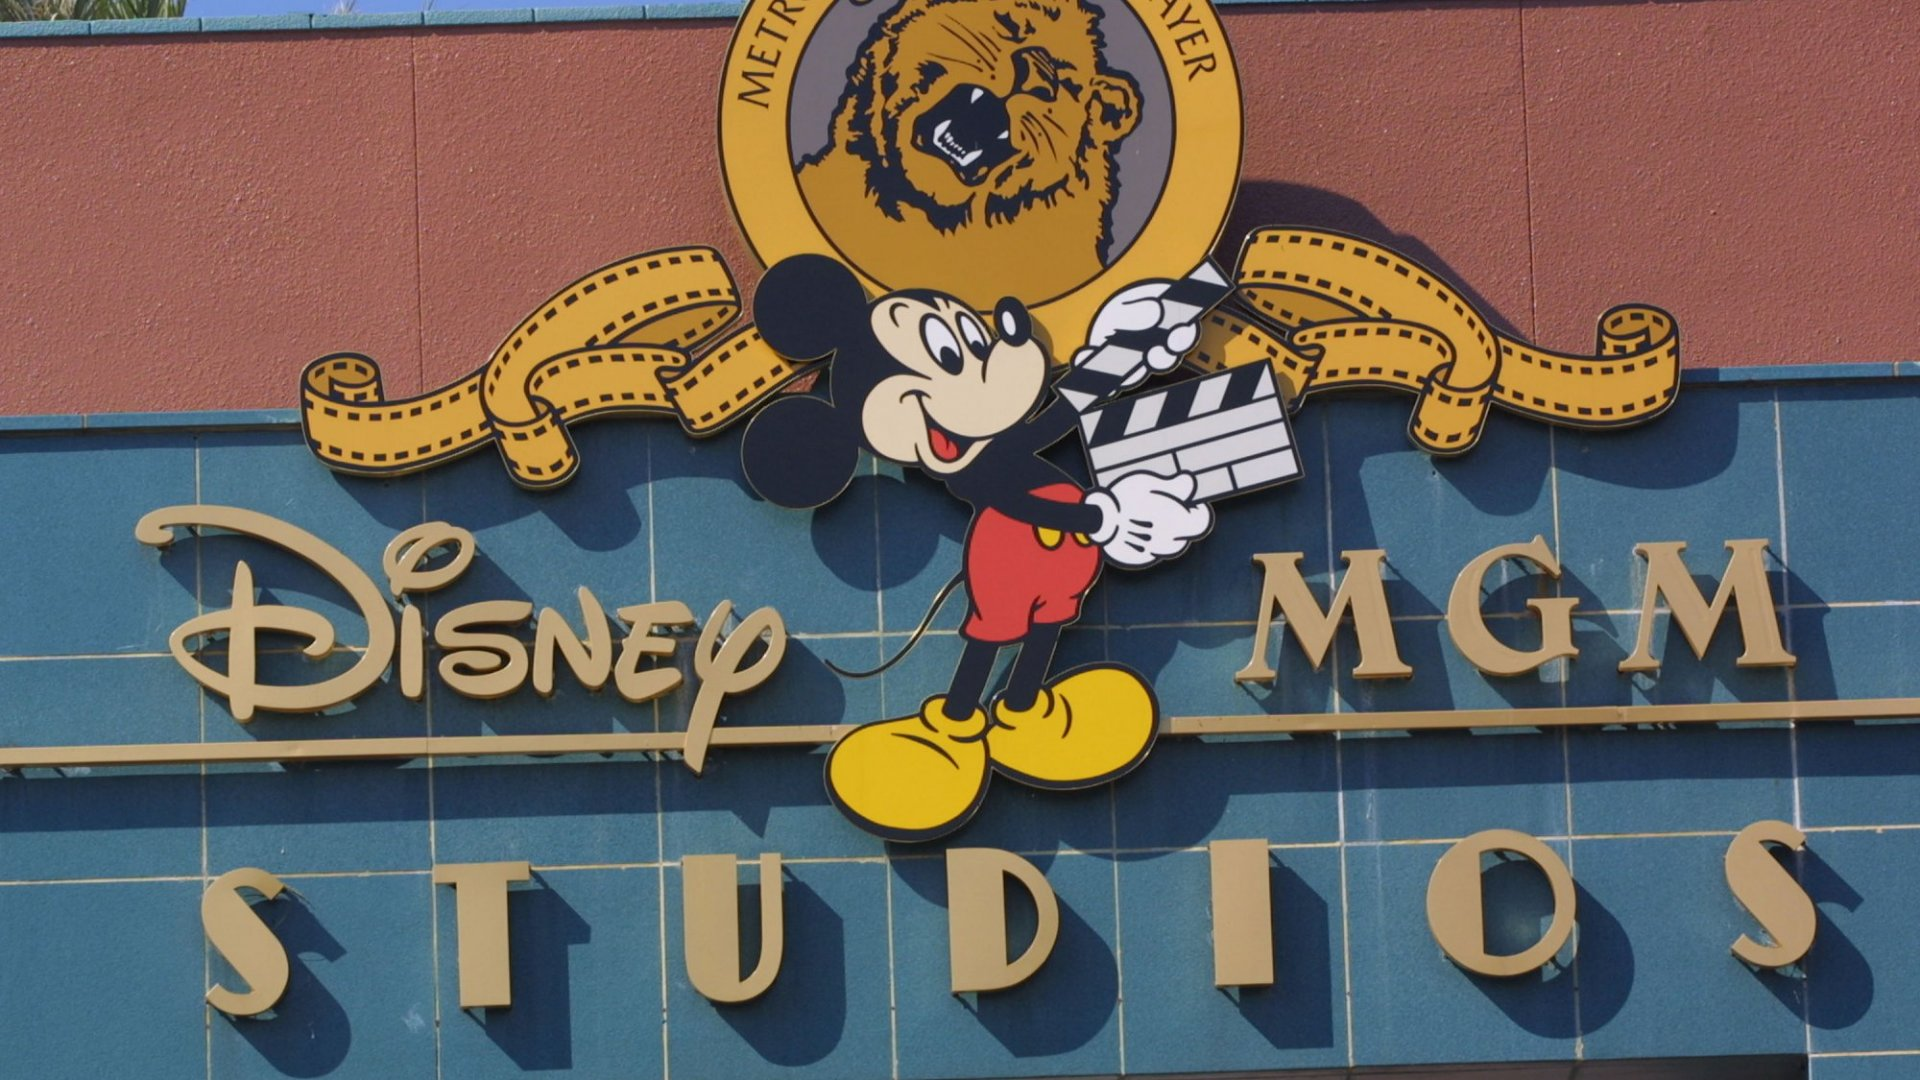 Why Disney Is Betting Big on Startups